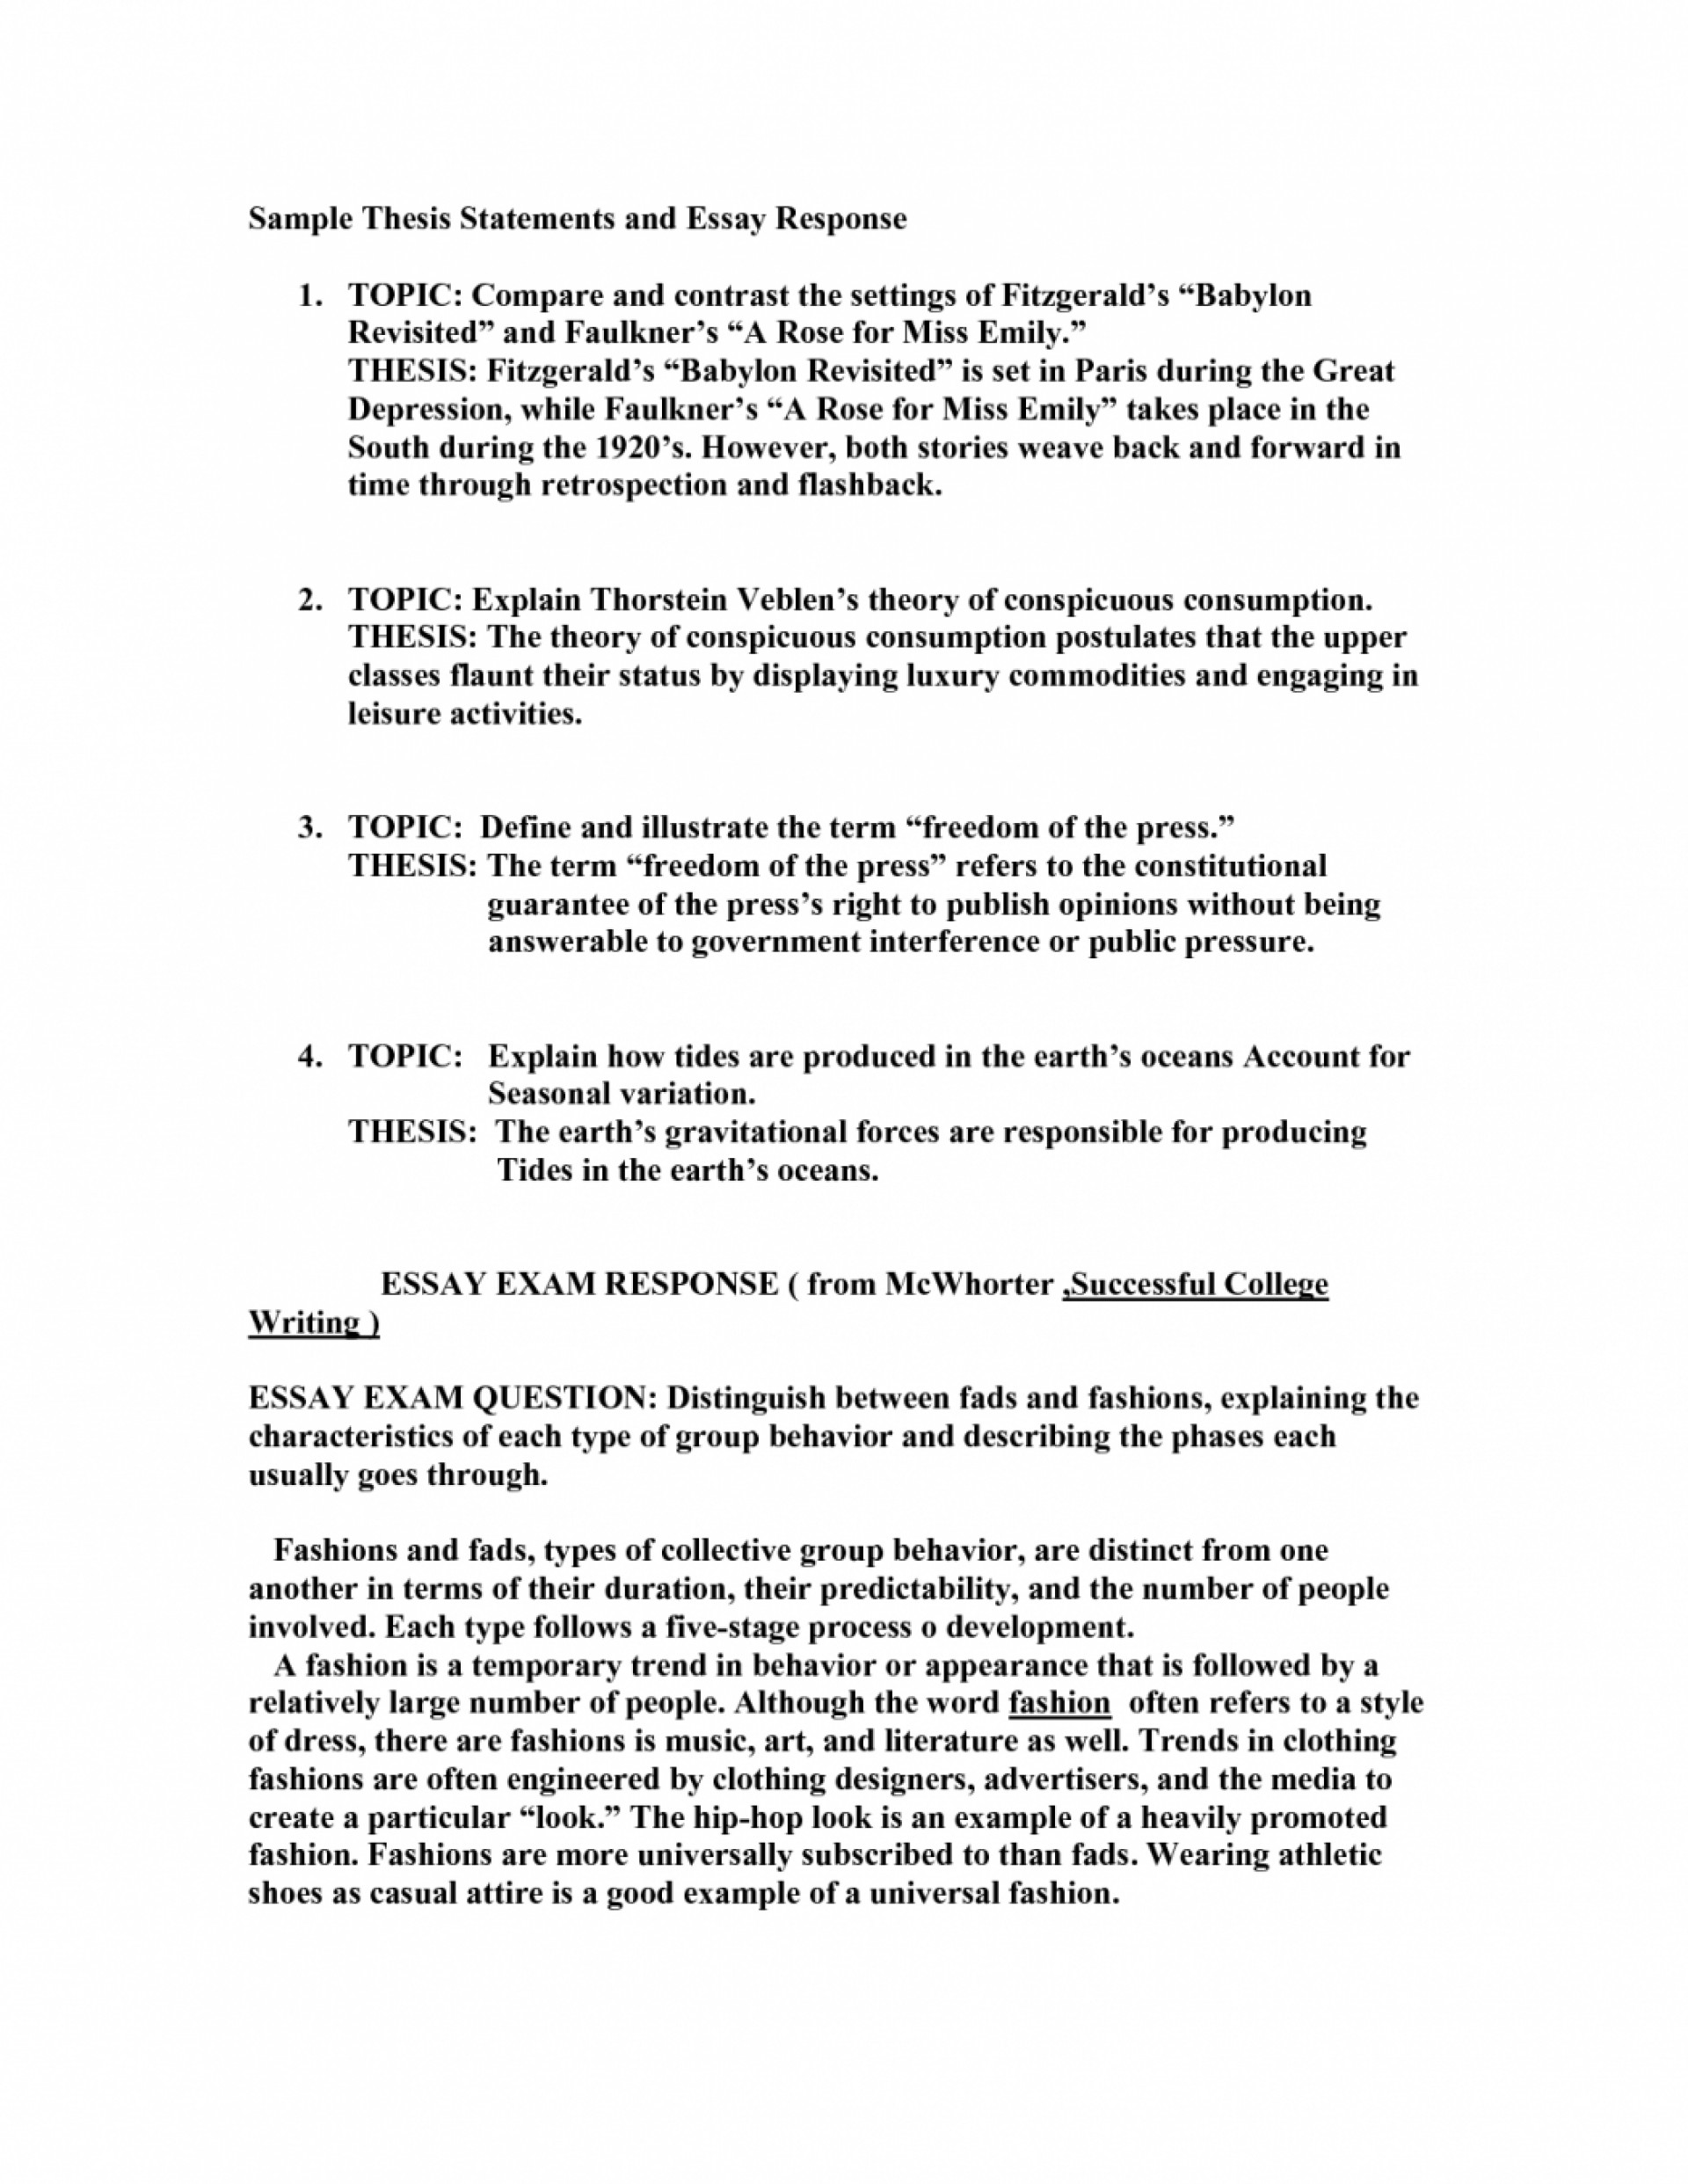 023 Thesis Statement Essay Example Of In An How To Write For About Yourself 6na1p Argumentative Step By Expository High School Ppt Informative Analysis Pdf 1048x1356 Frightening A Do You 1920